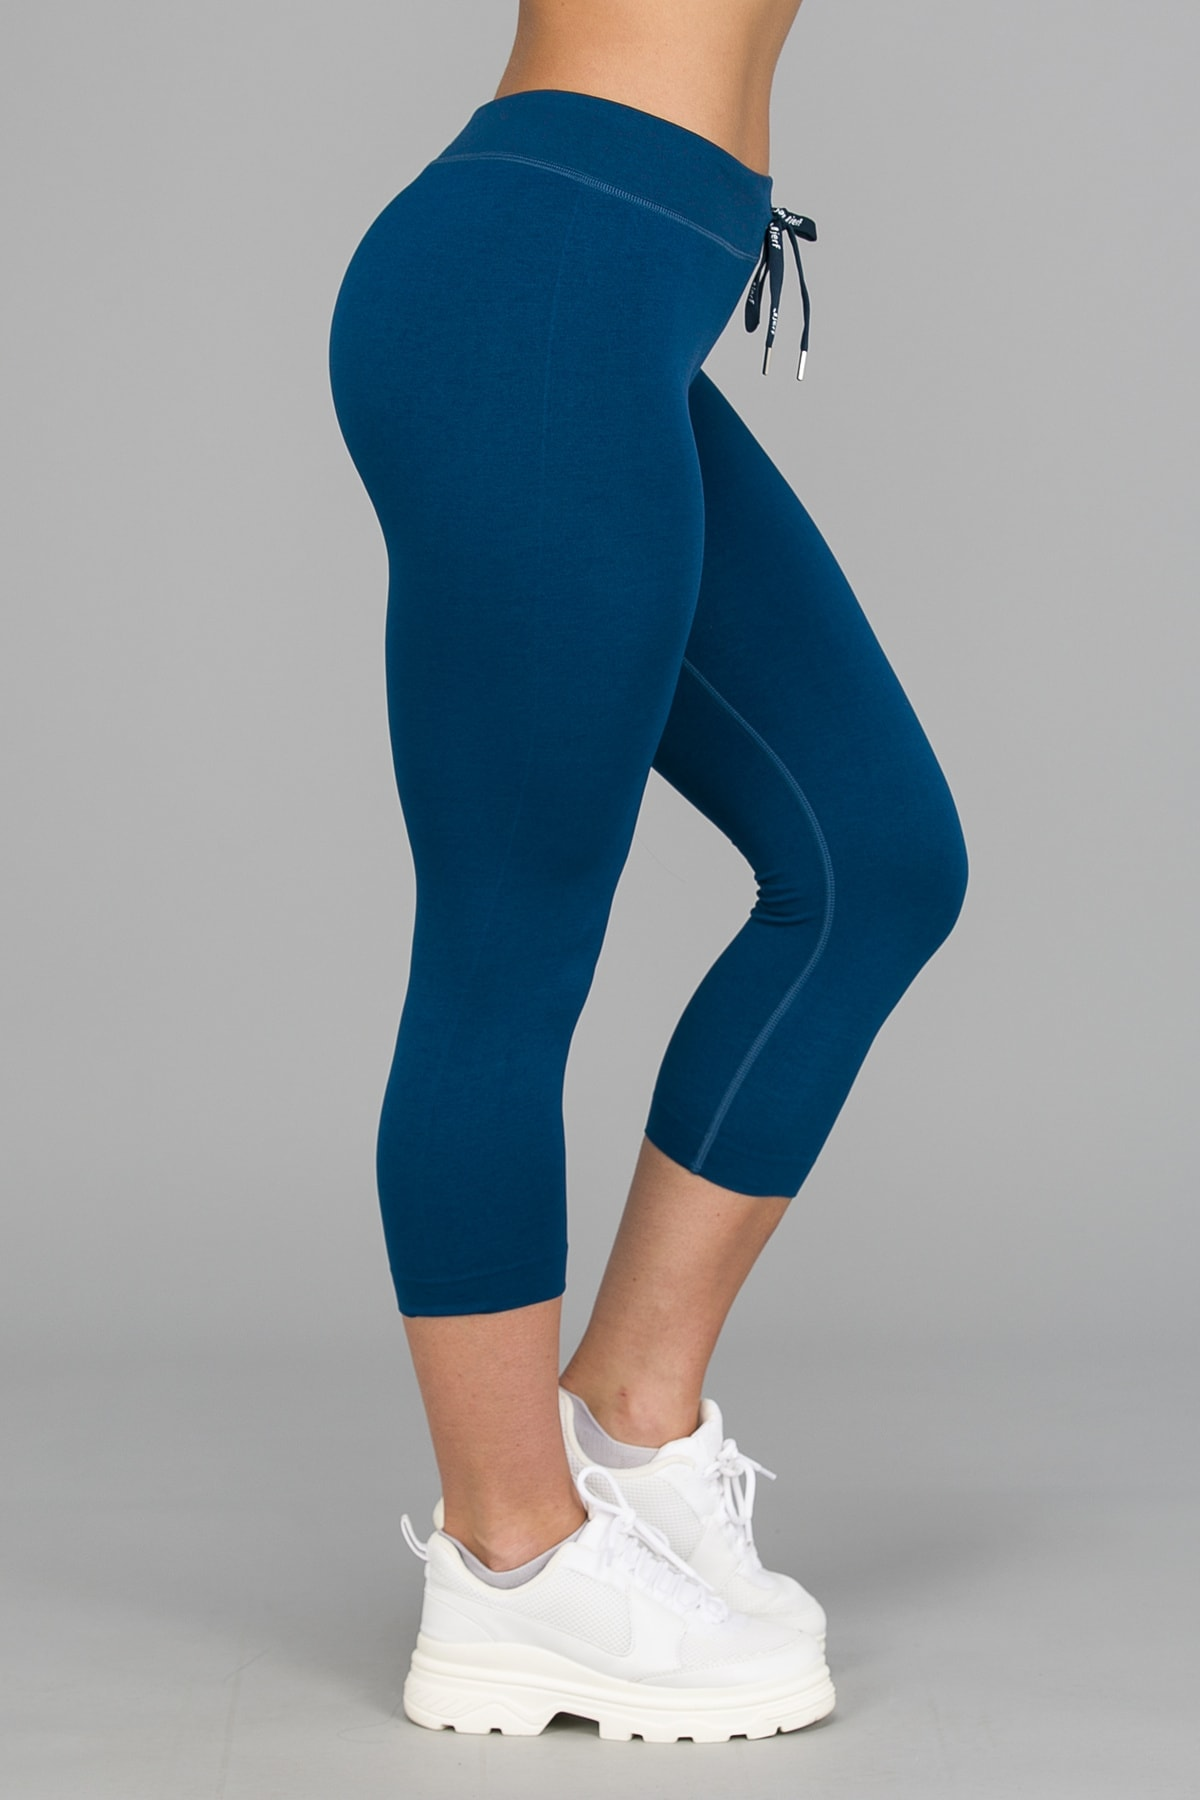 Jerf Captiva Tights (3:4) Navy15